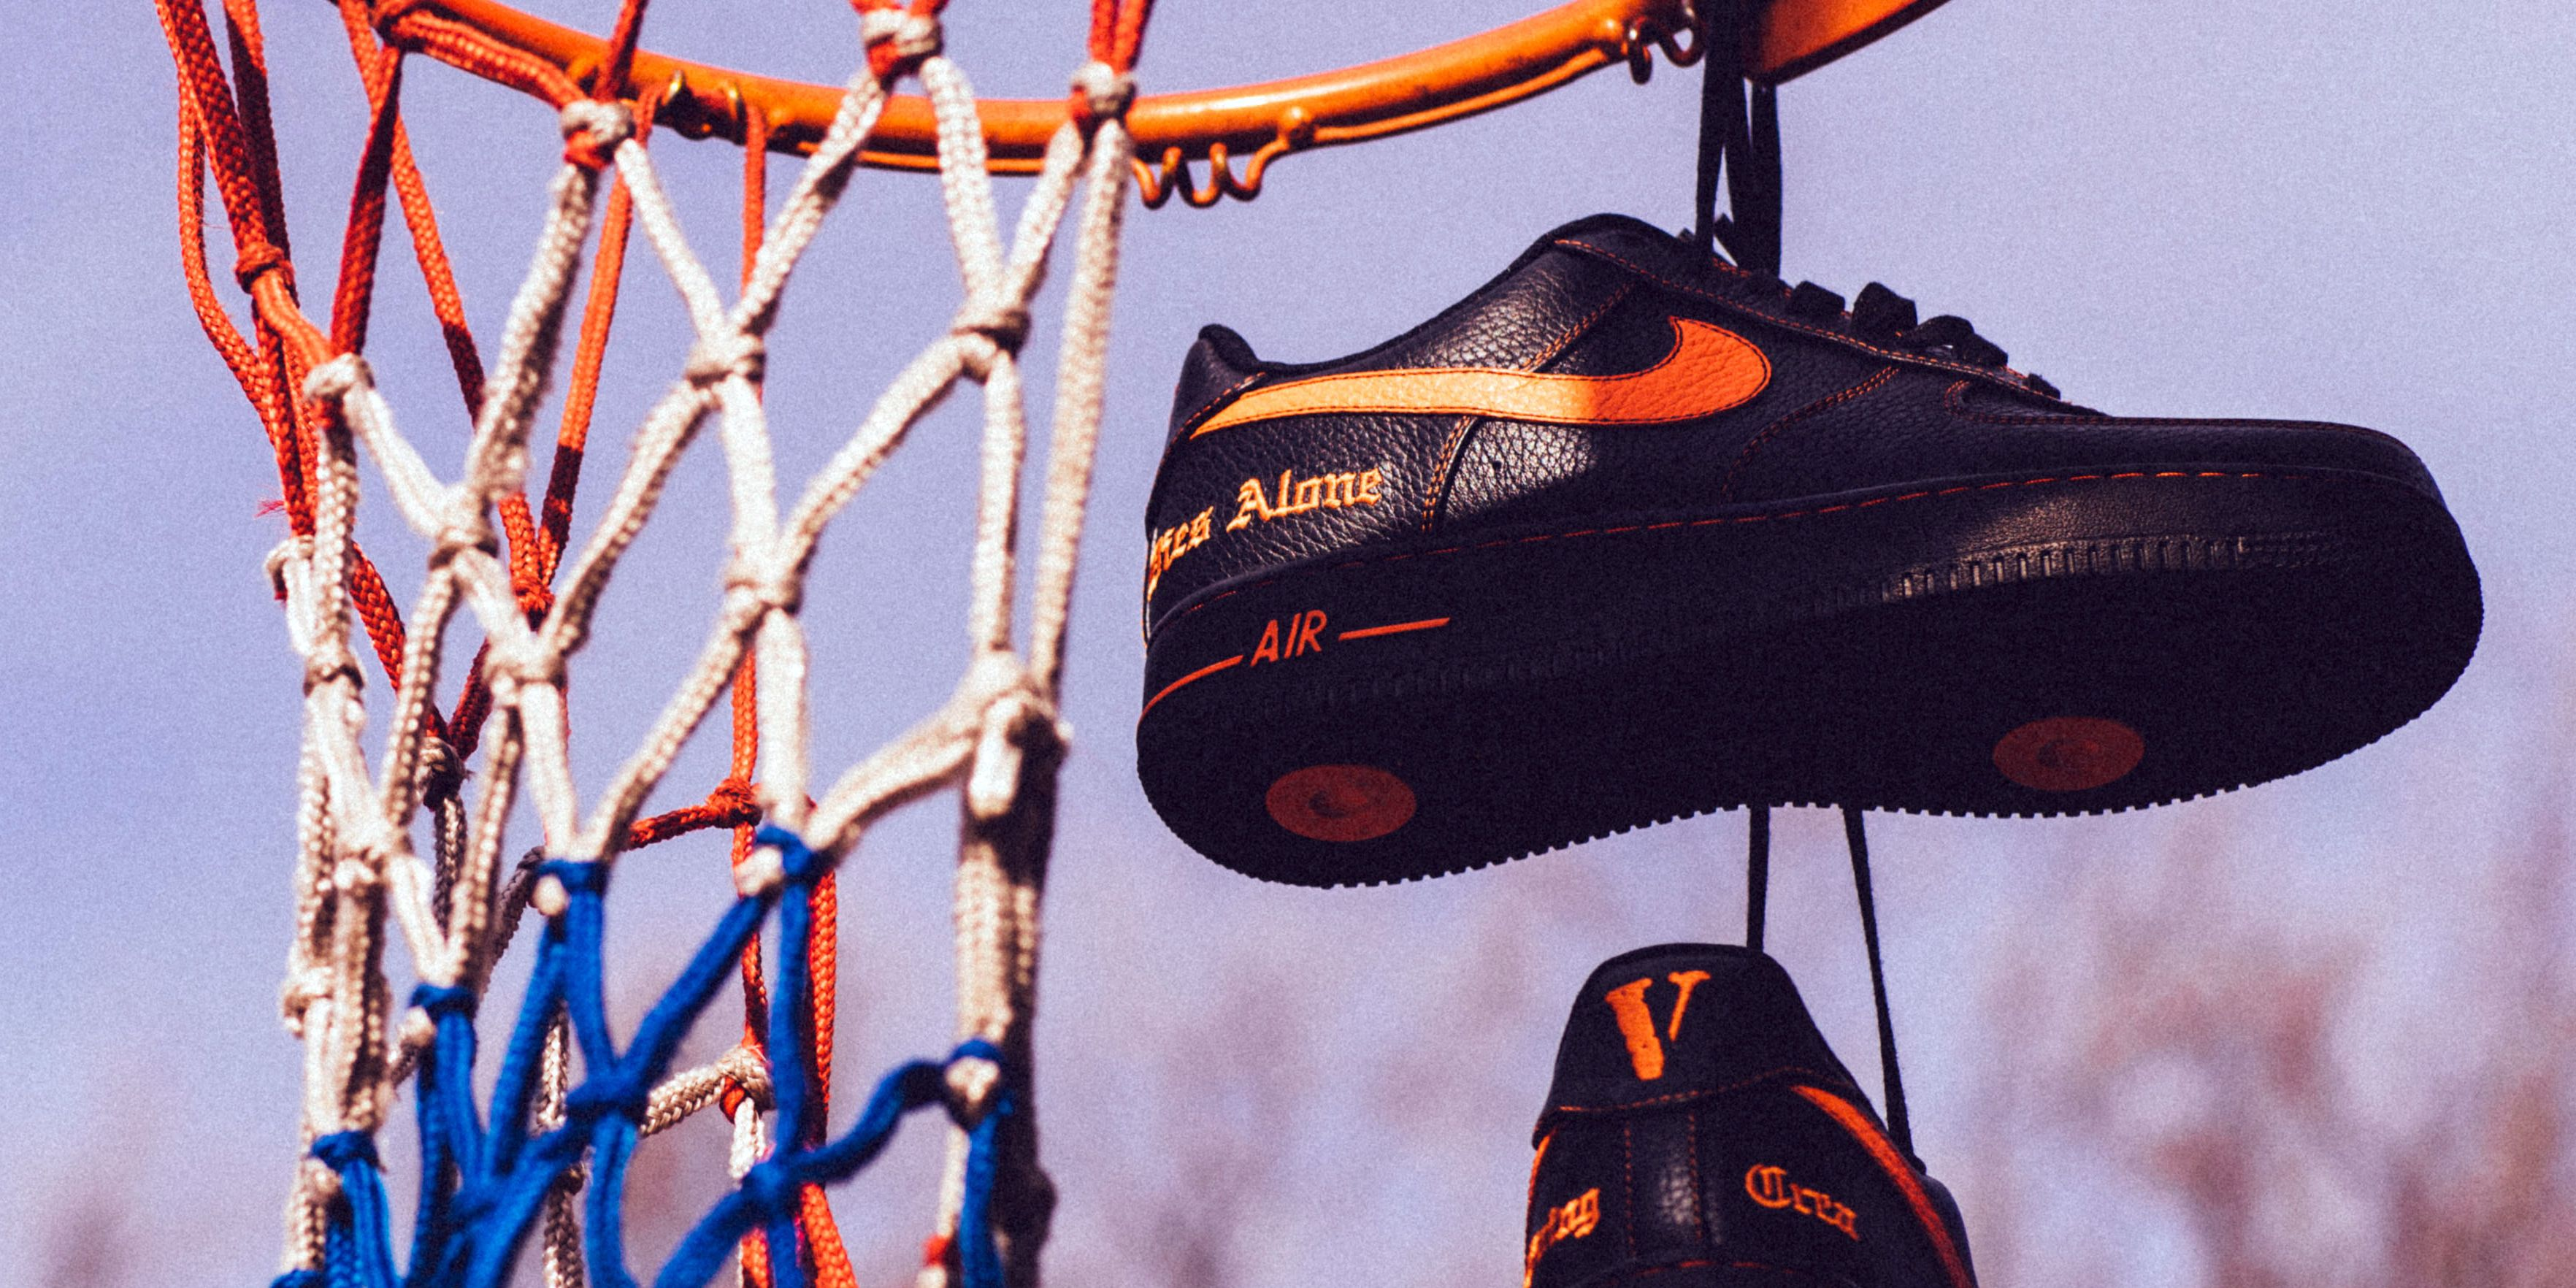 with Nike Air Force Bari Collab A New on VLONE's 1 AP zVpGqUMS